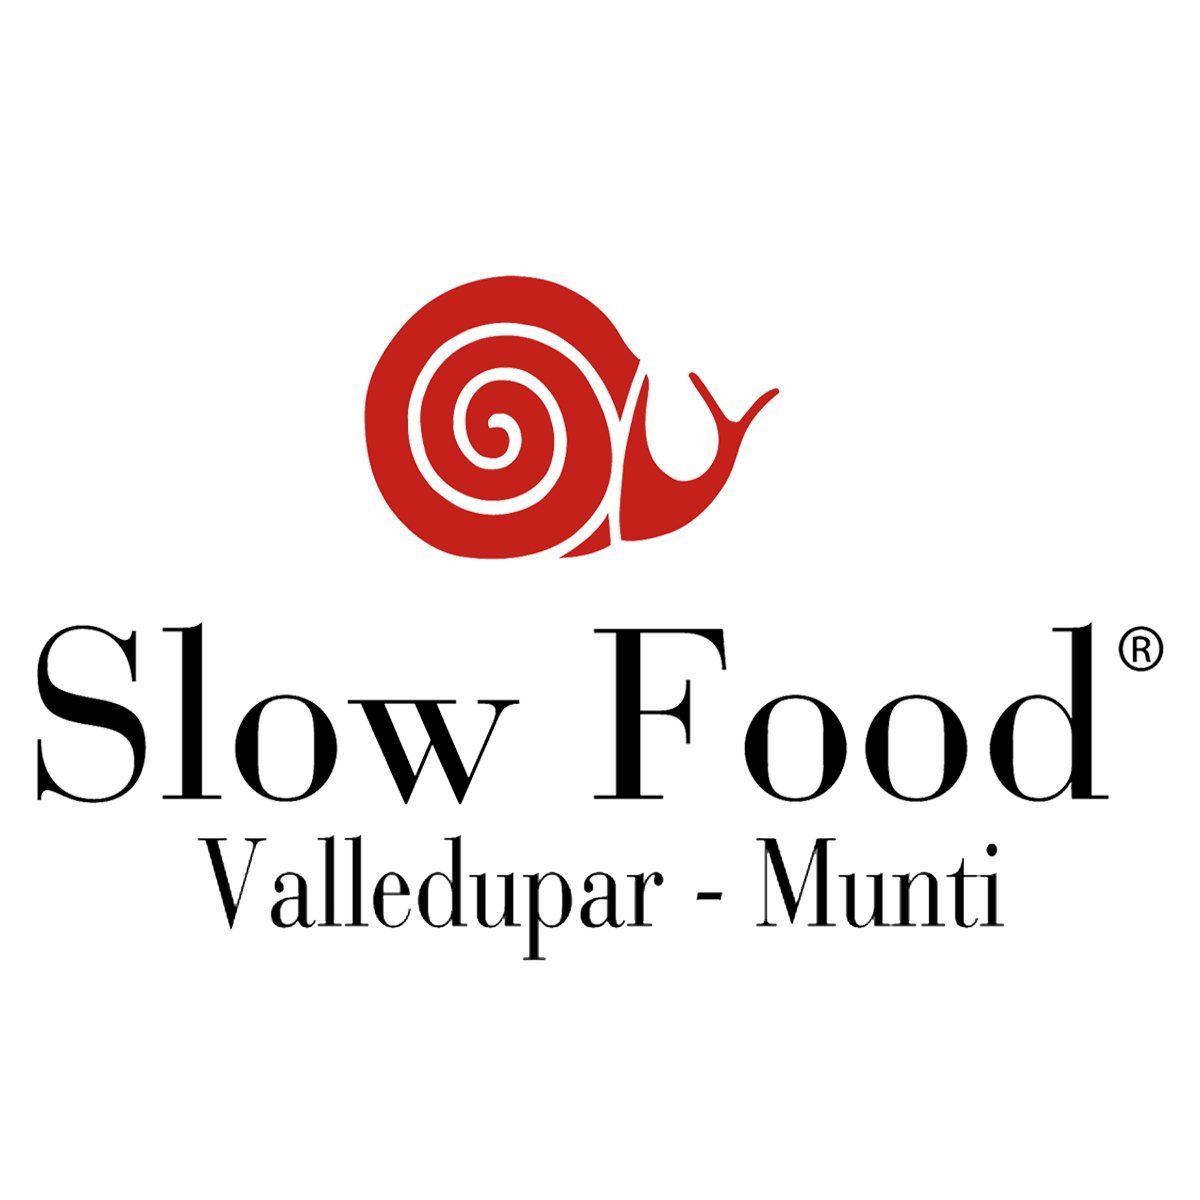 Slow Food Valledupar